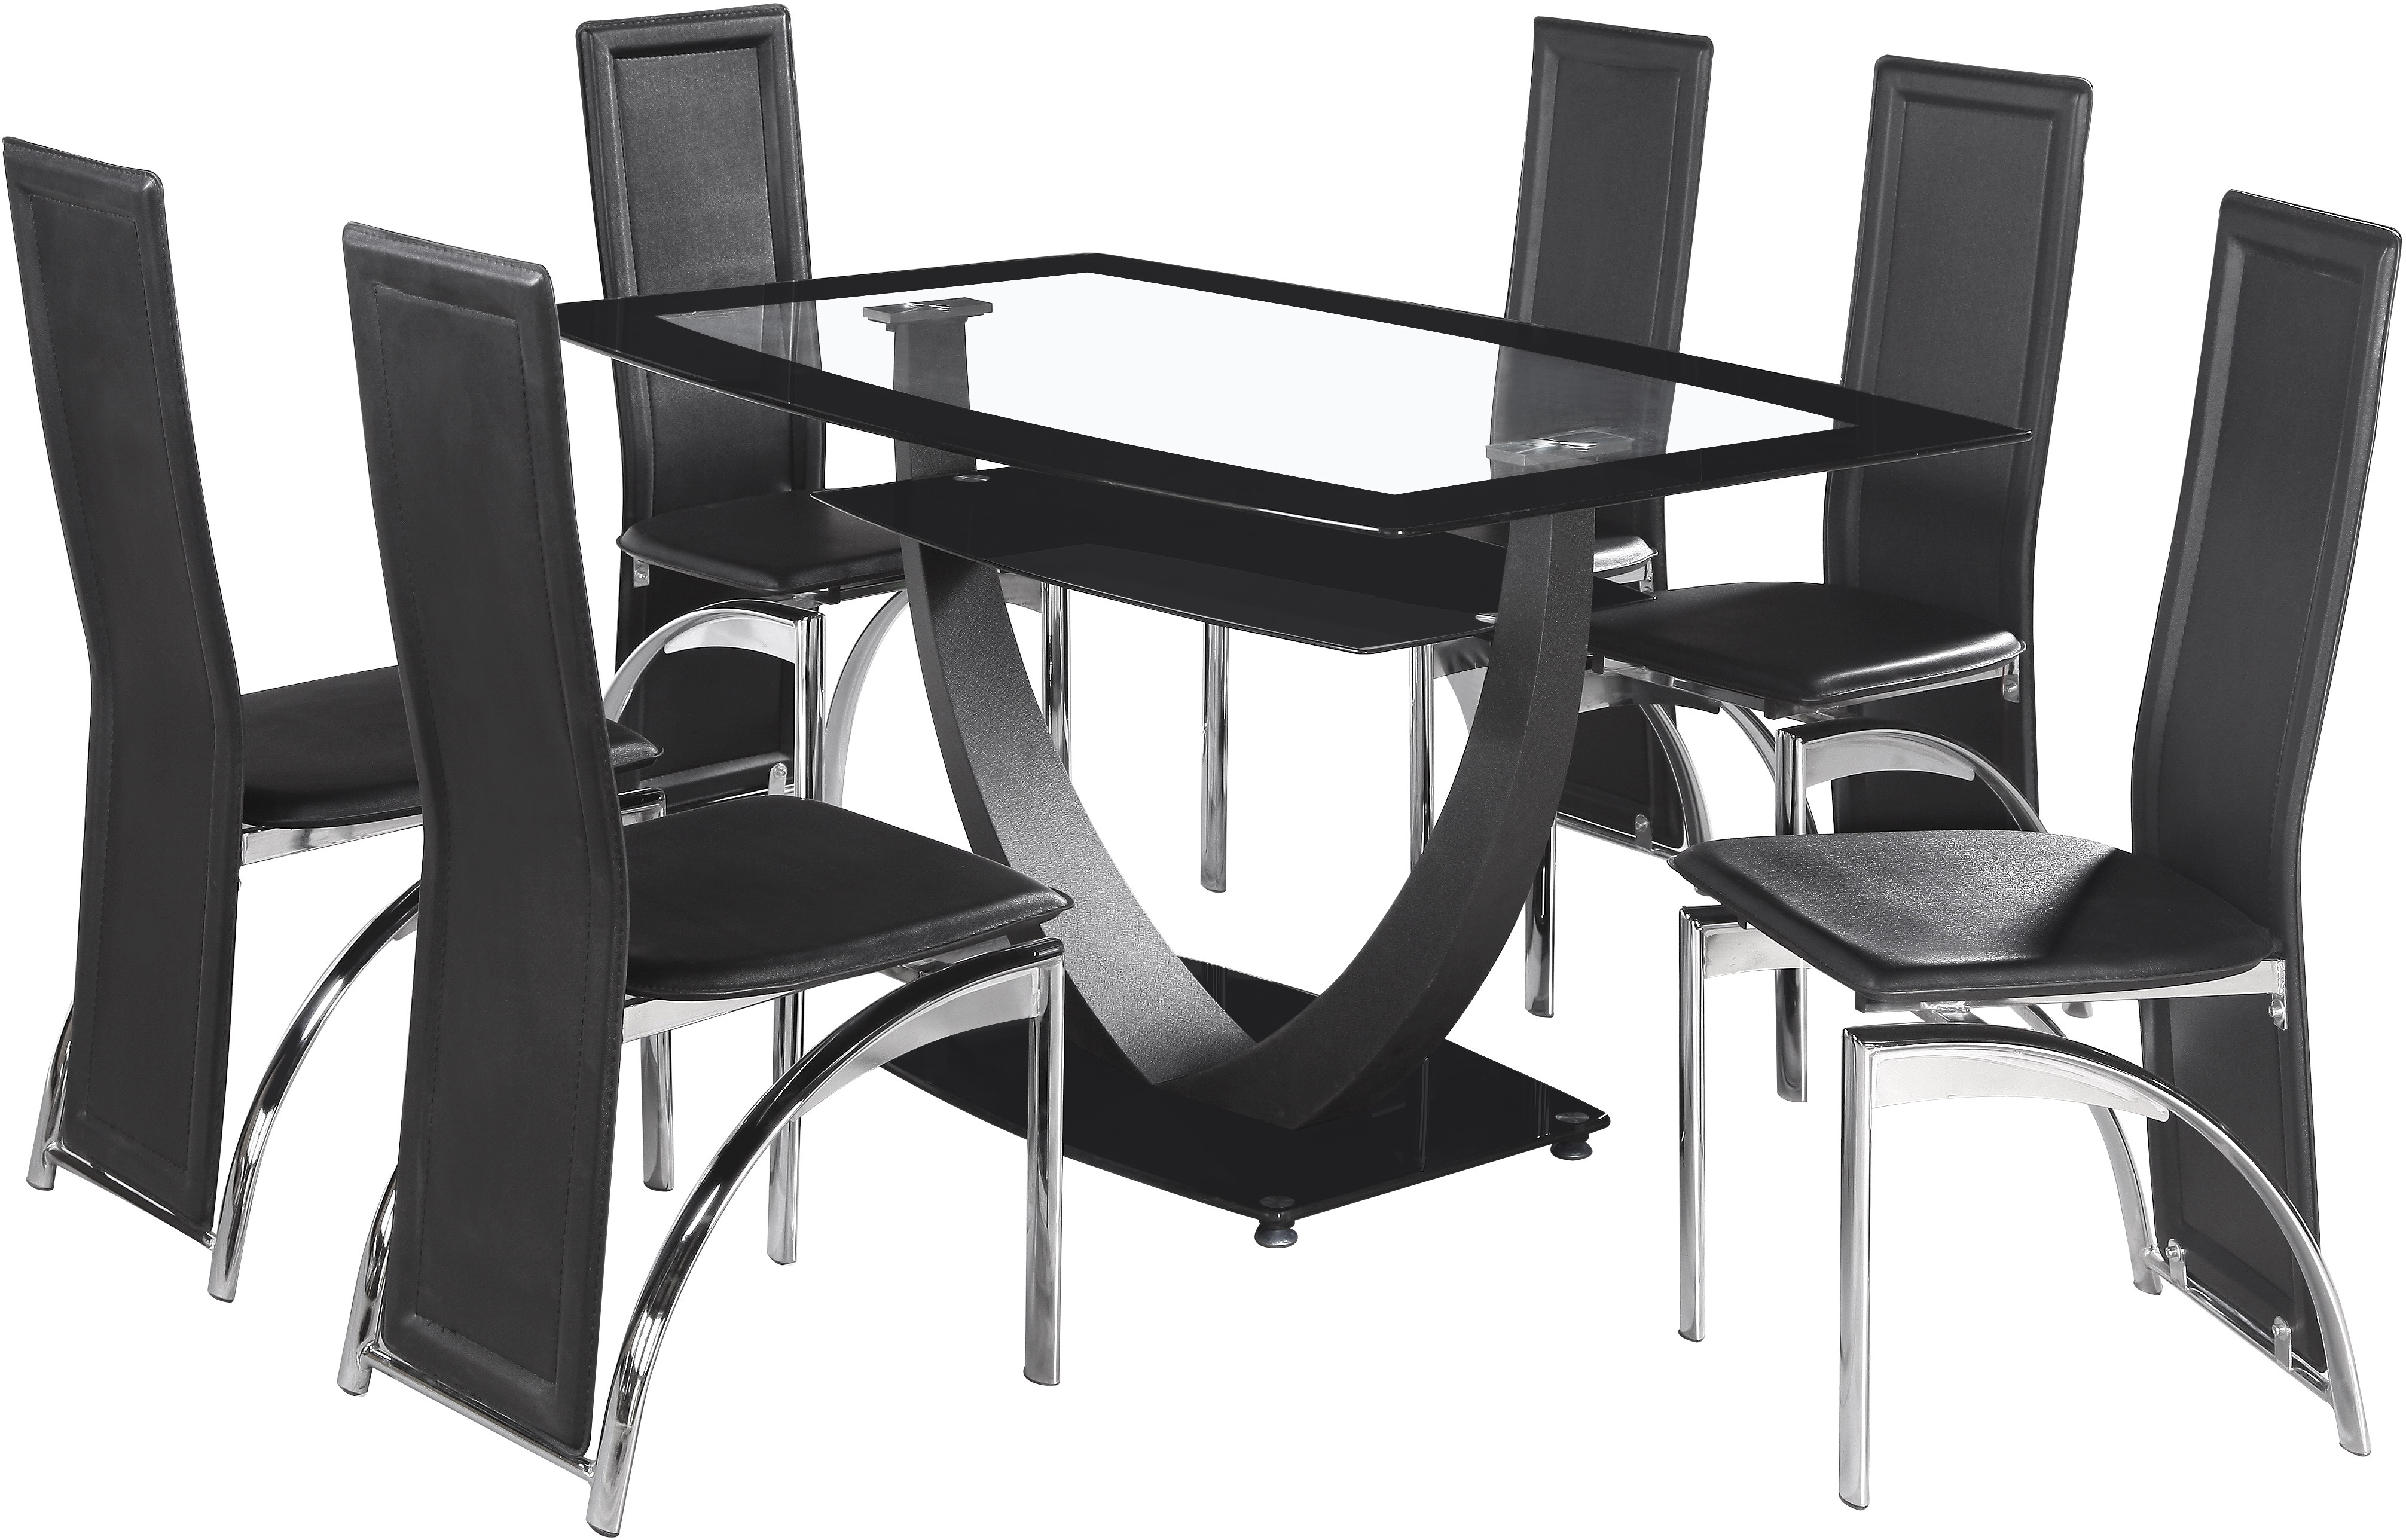 Hanley 6 Seater Dining Set in Clear Glass & Black Border